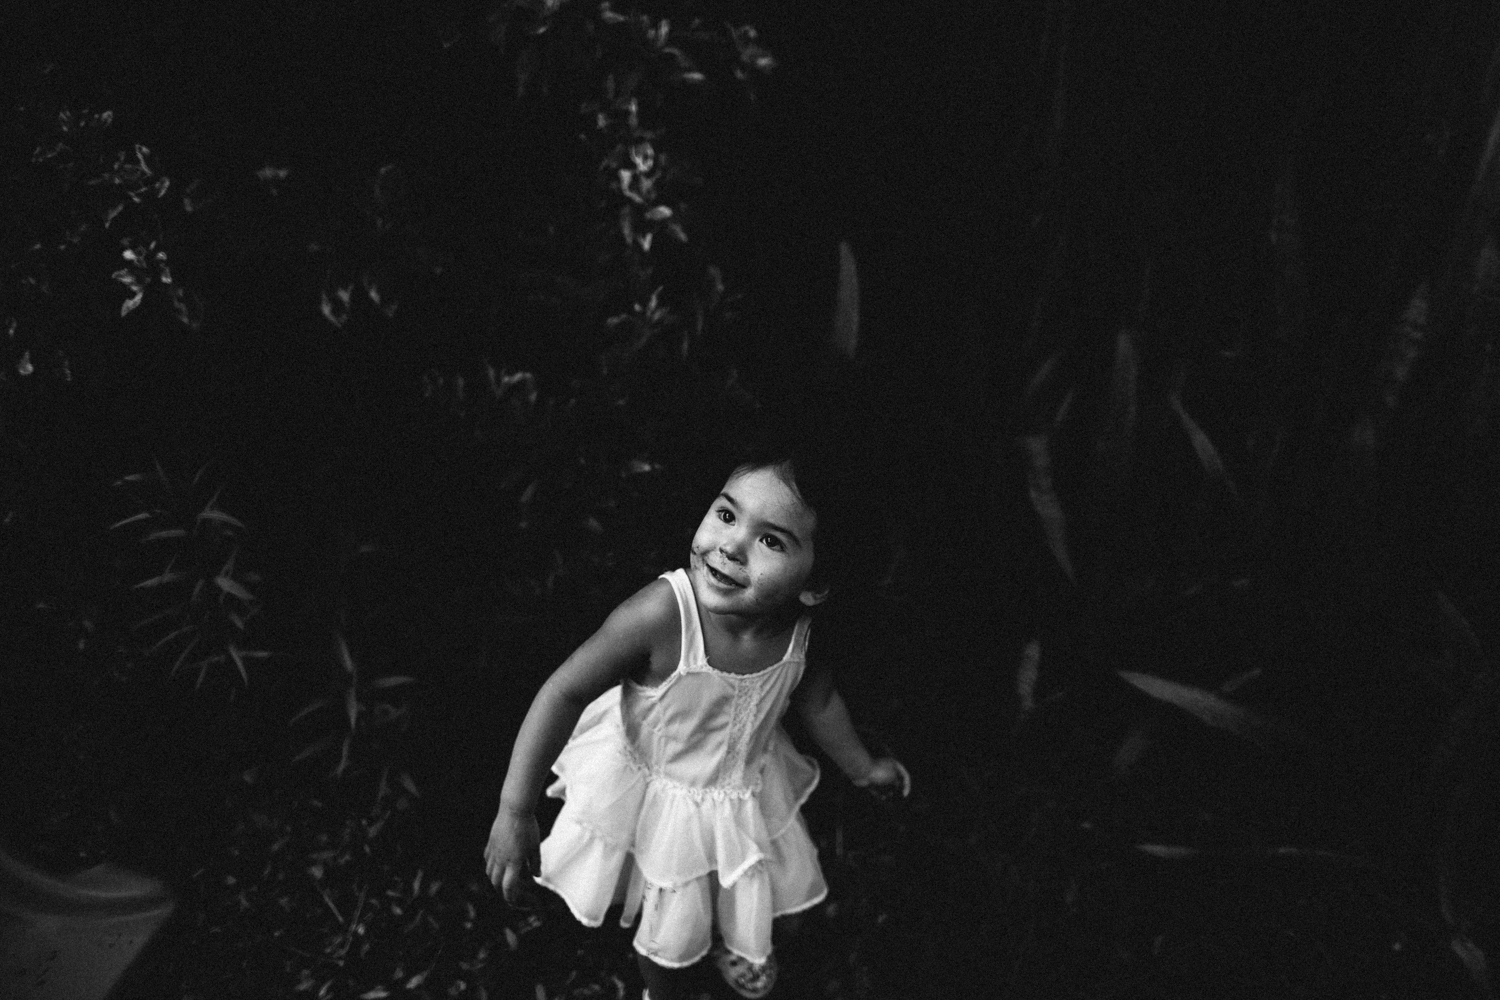 baby photographer of tampa bay fl